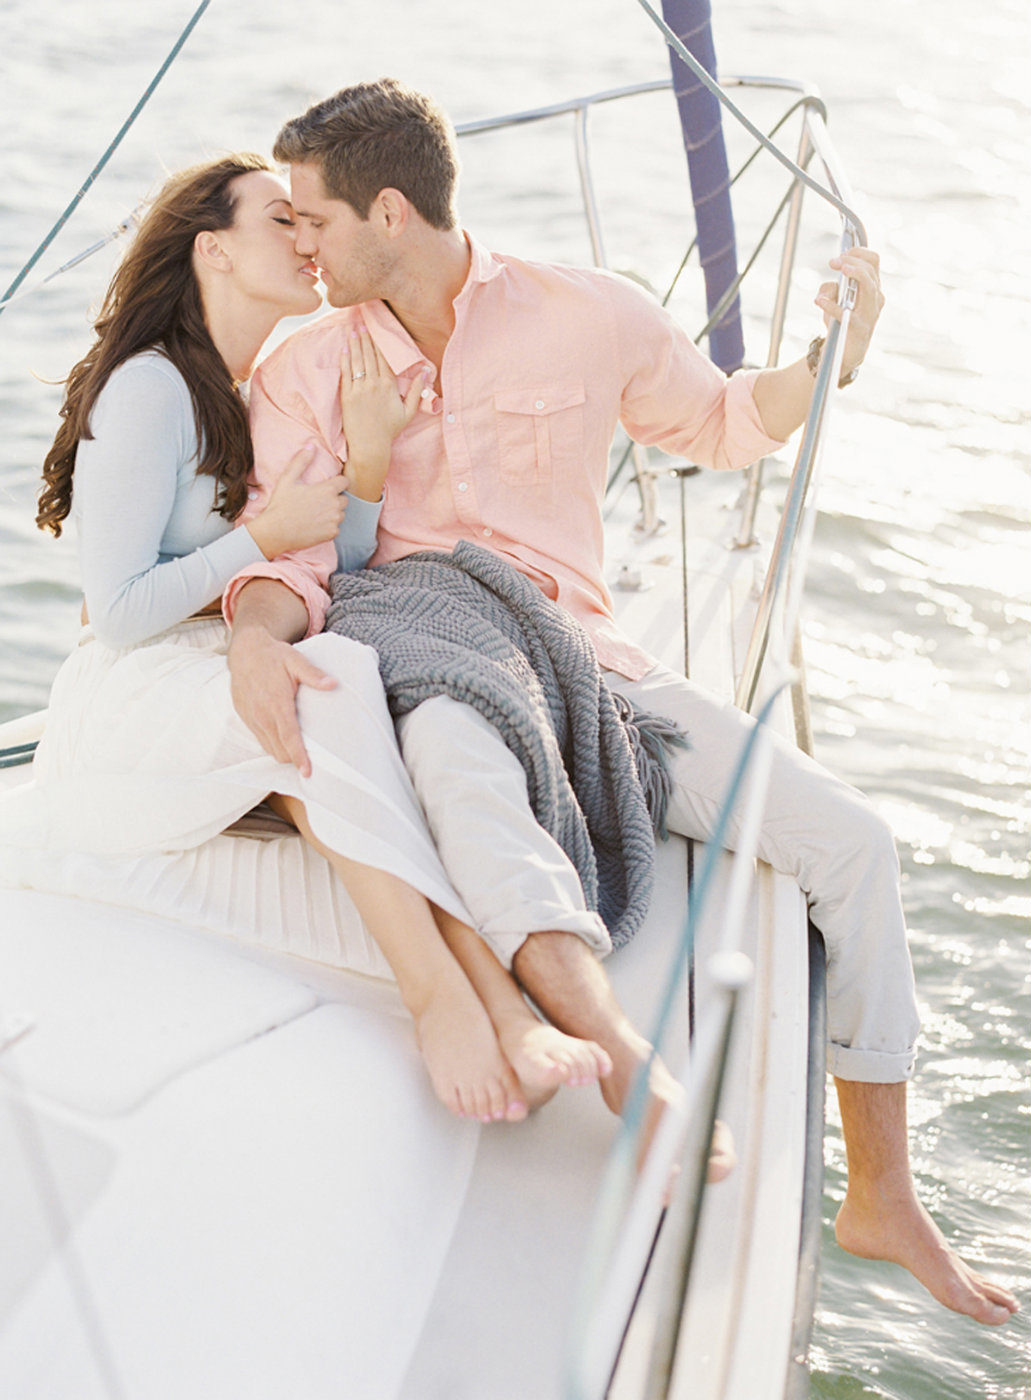 kayla_jon_vizcaya_sailboat_engagement_melanie_gabrielle_photography_561